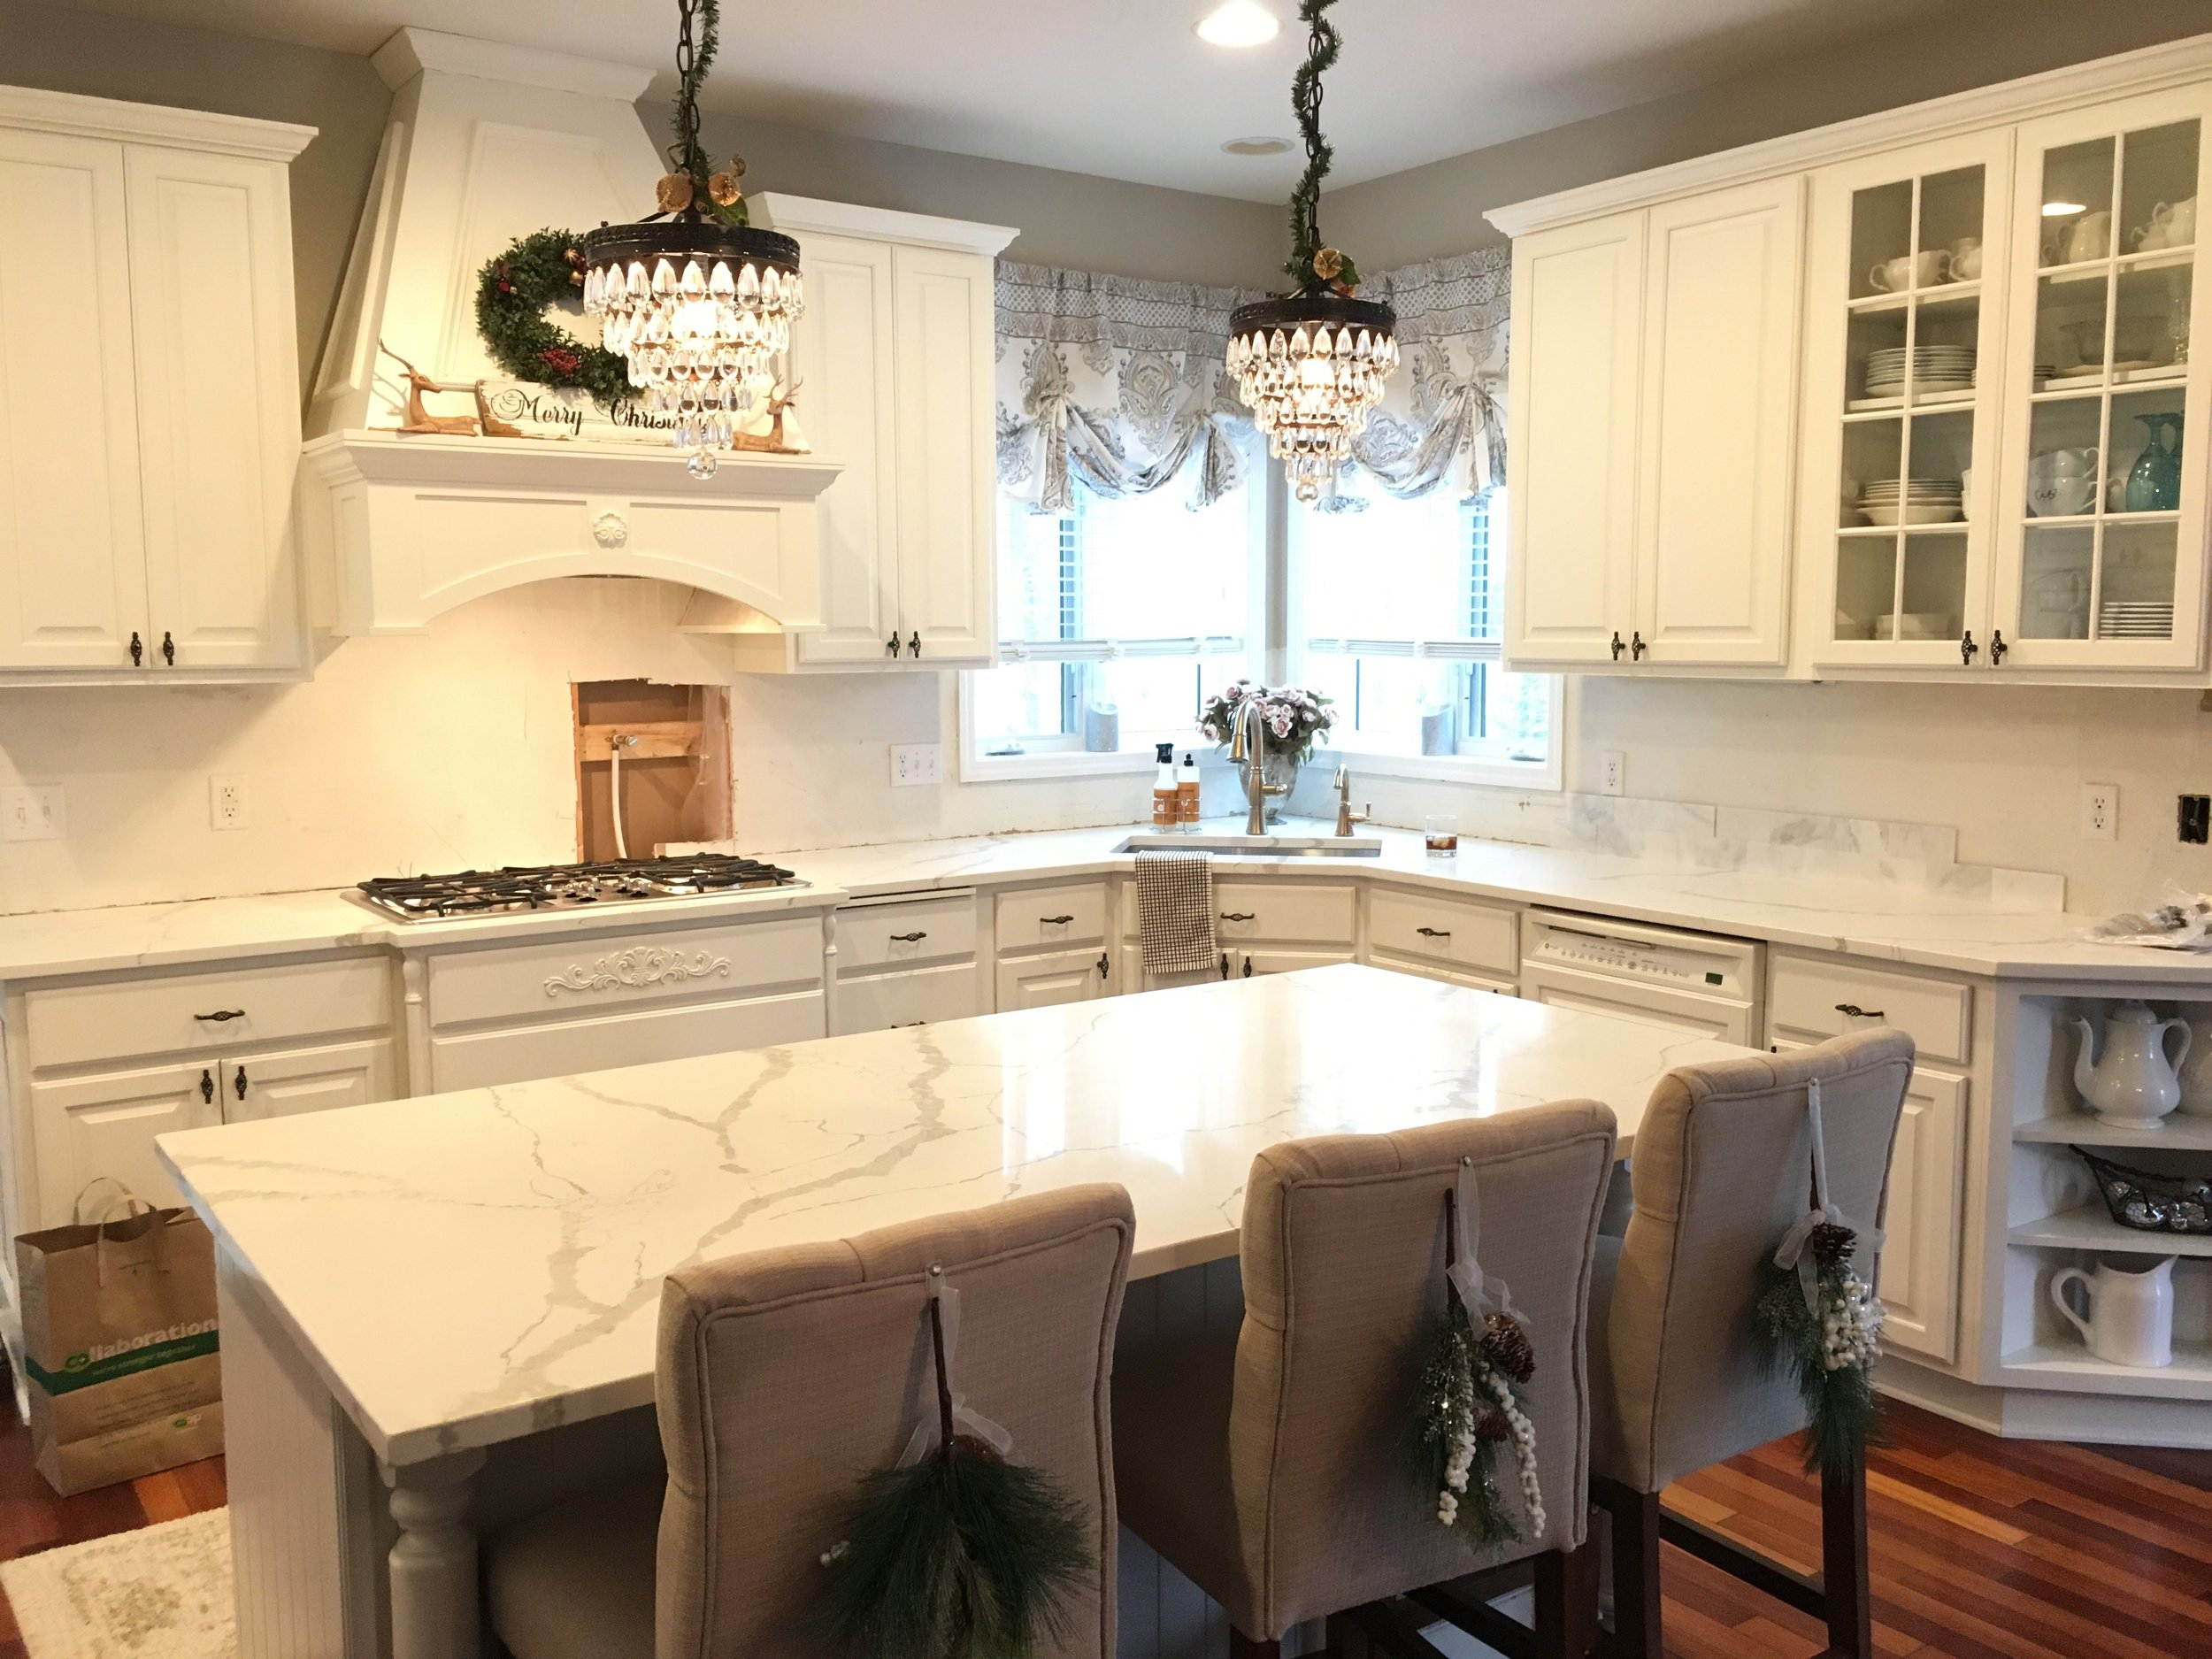 Kim S Bright White Kitchen Remodel Styled With Lace